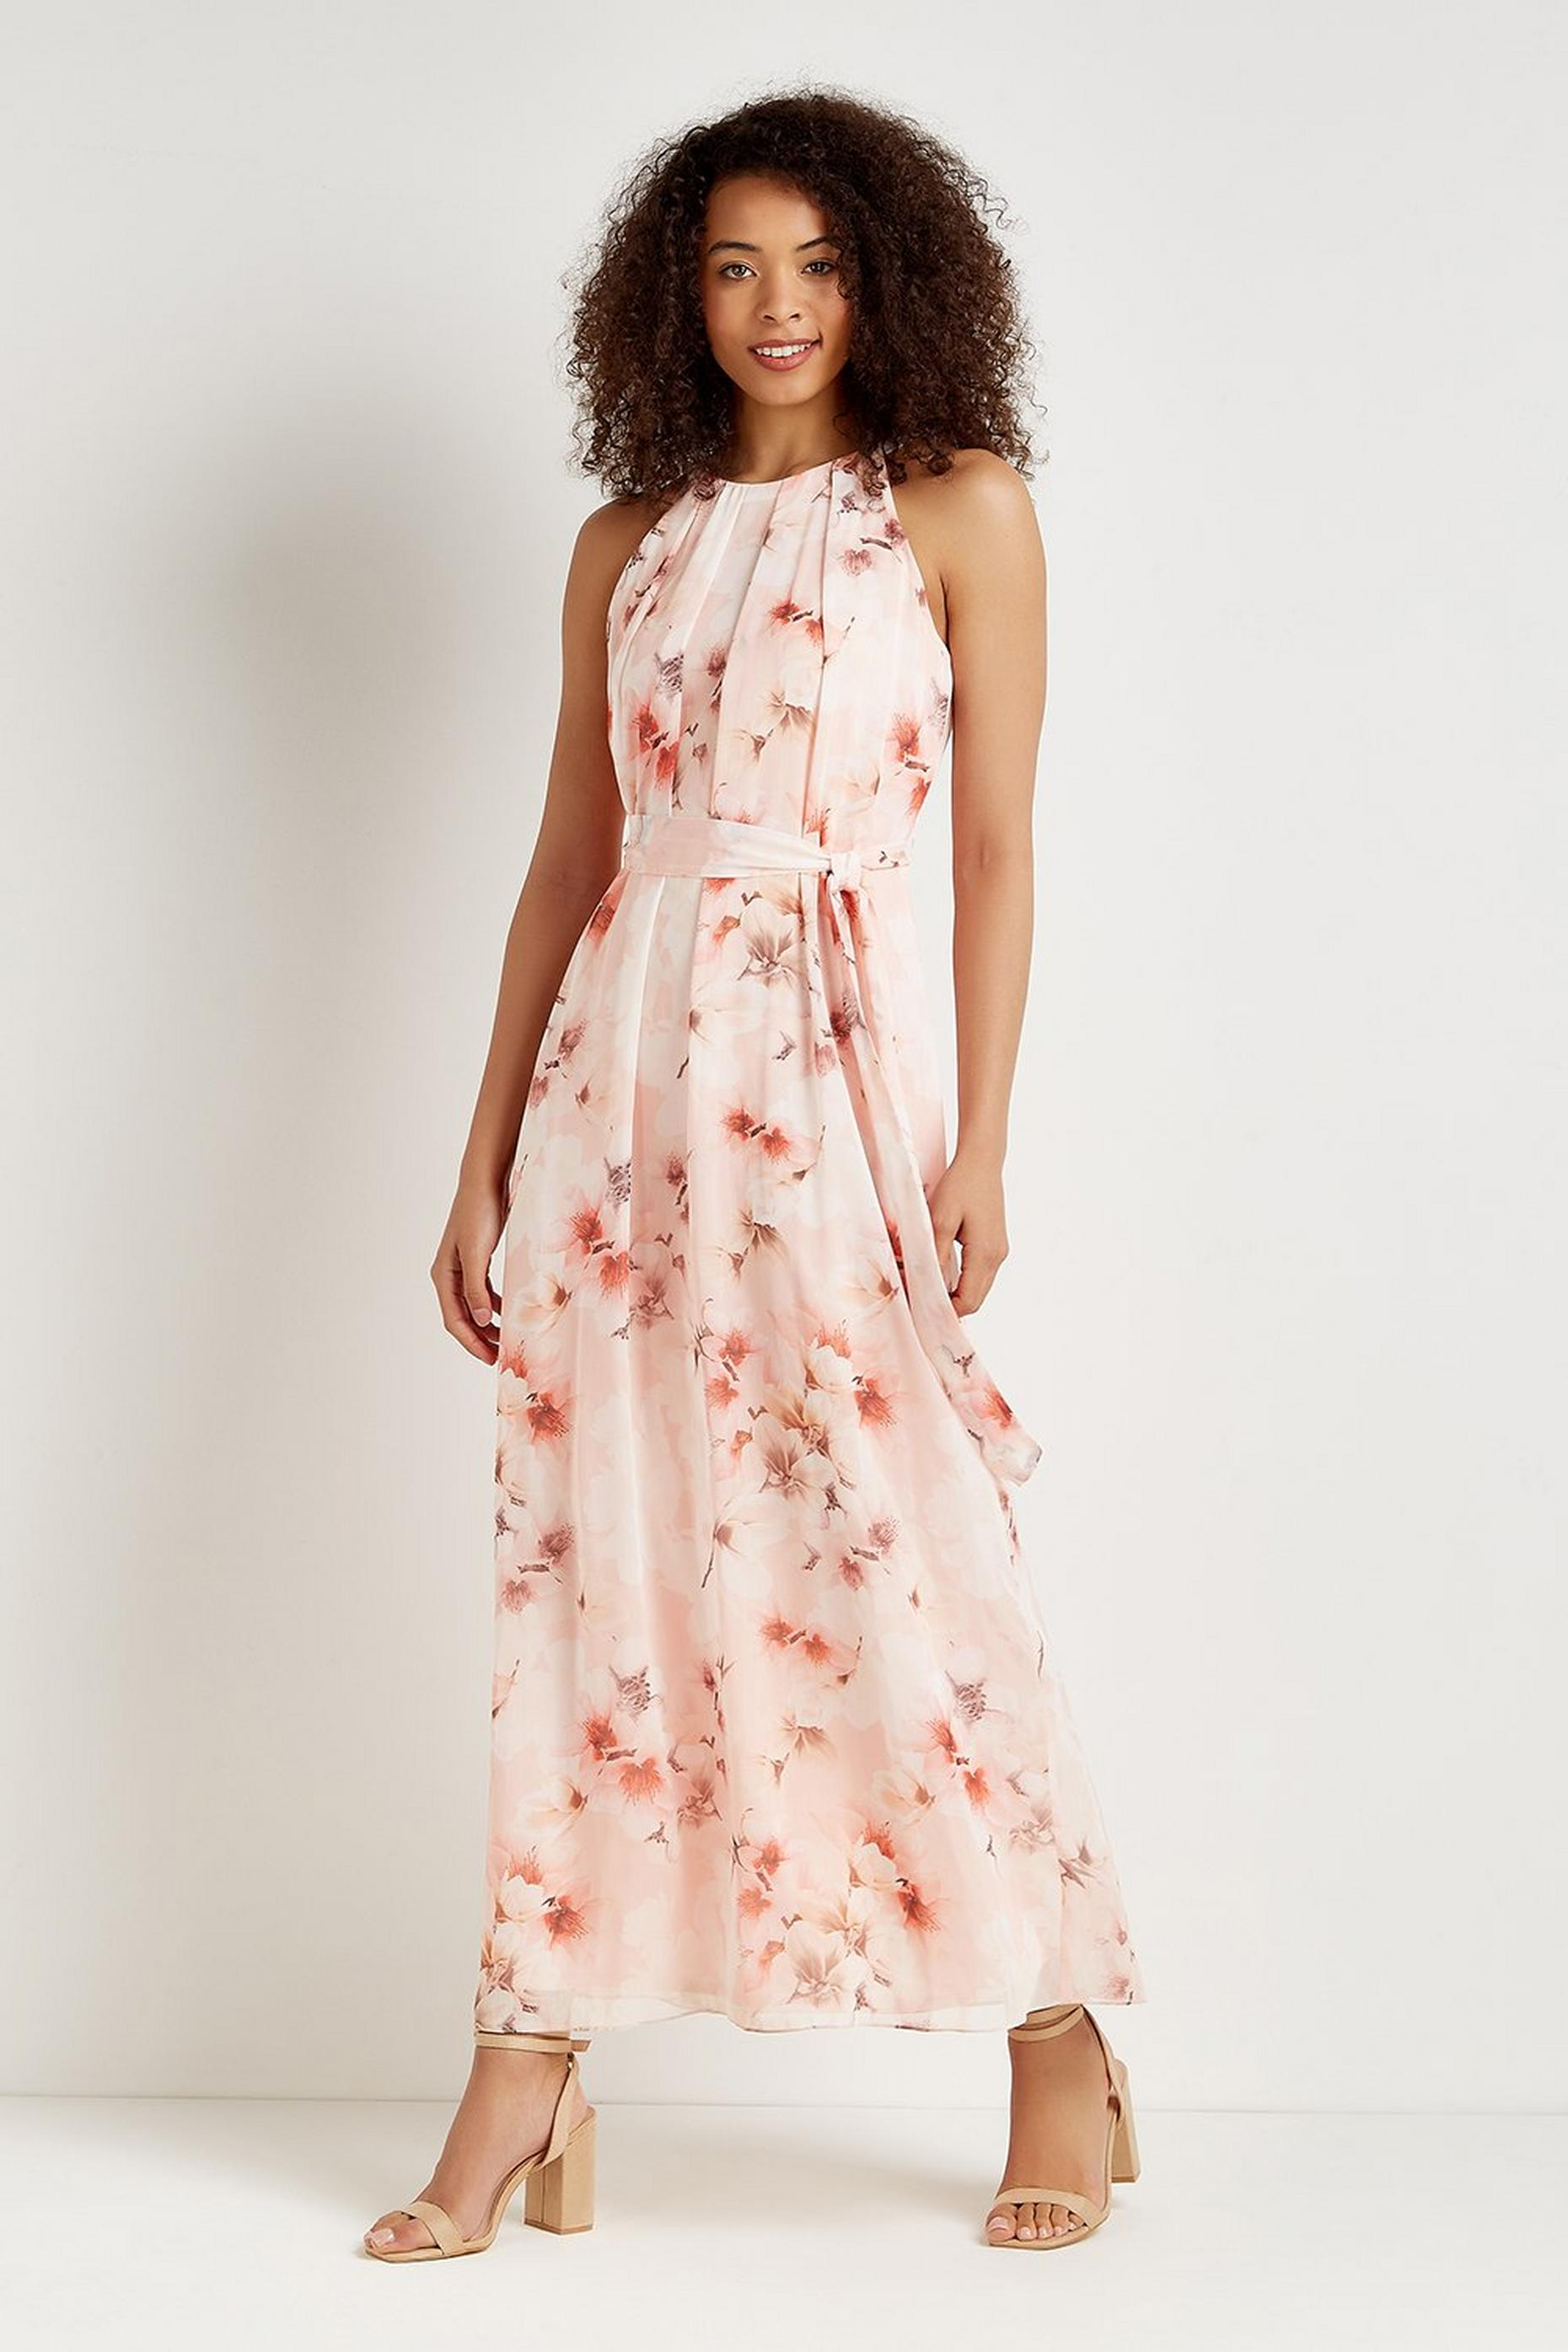 Magnolia Blossom Floral Maxi Dress